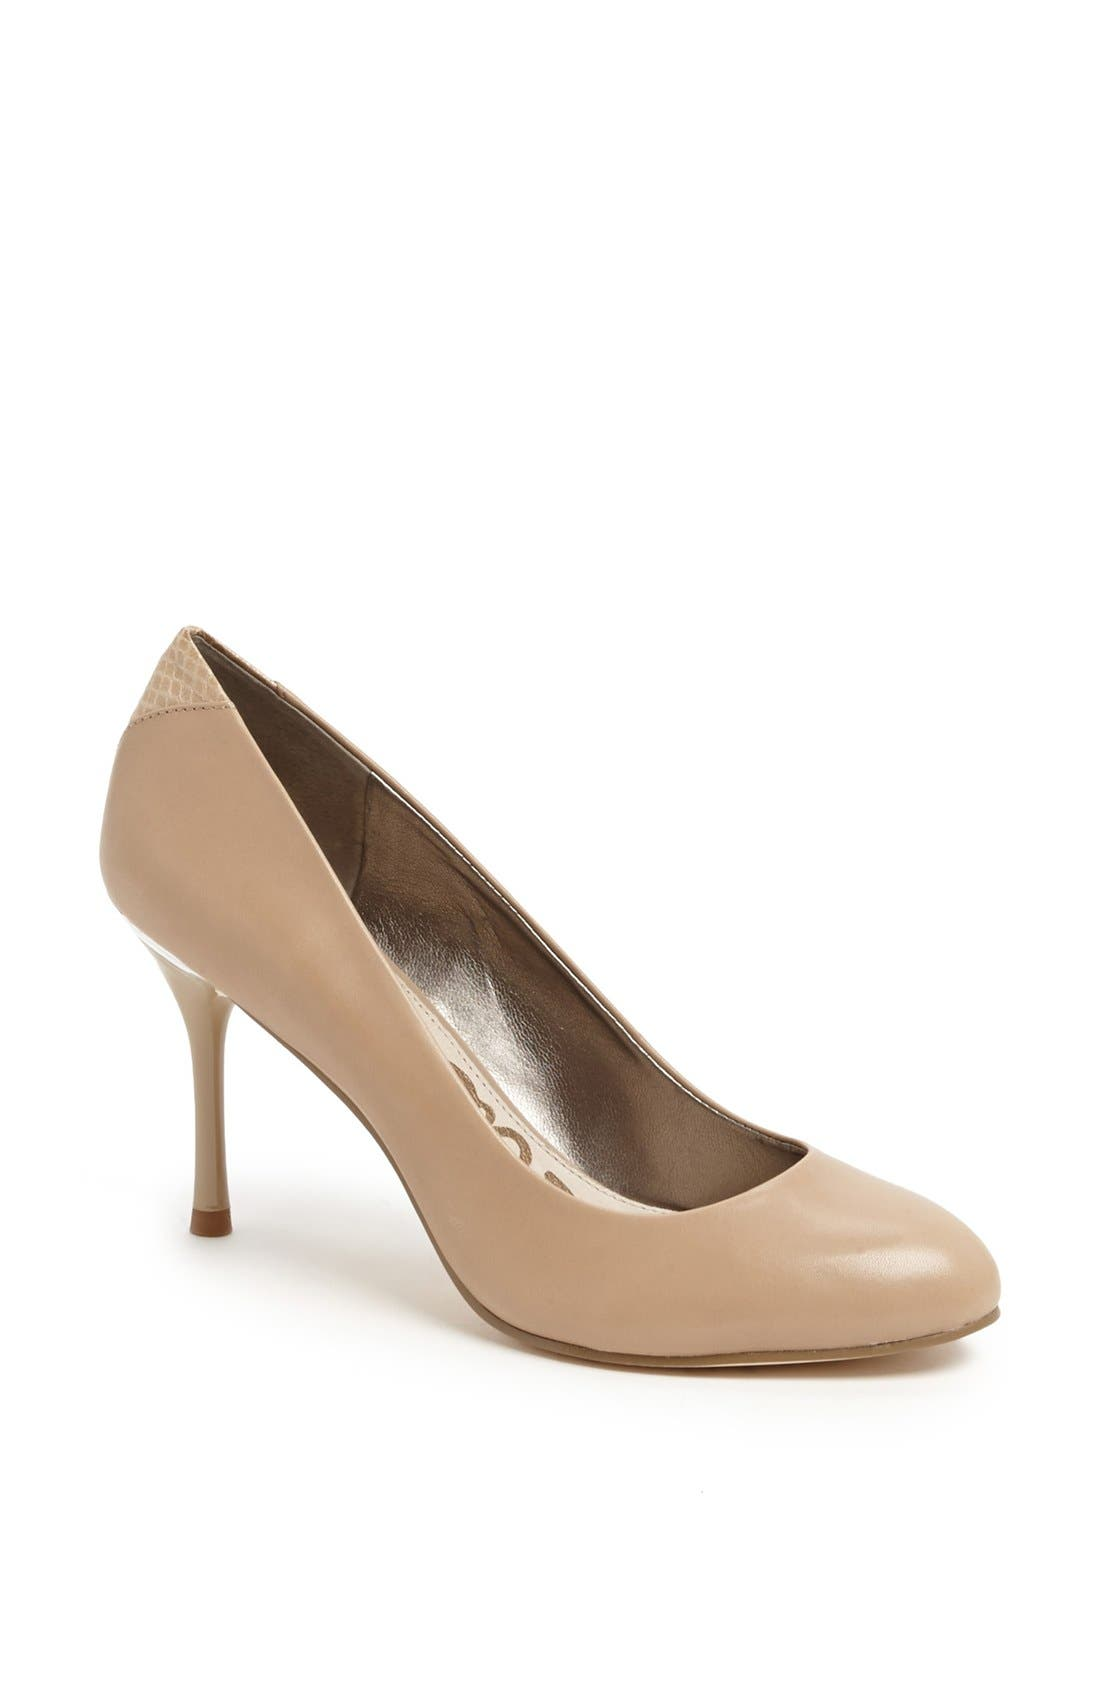 'Camdyn' Pump,                         Main,                         color, Classic Nude Leather